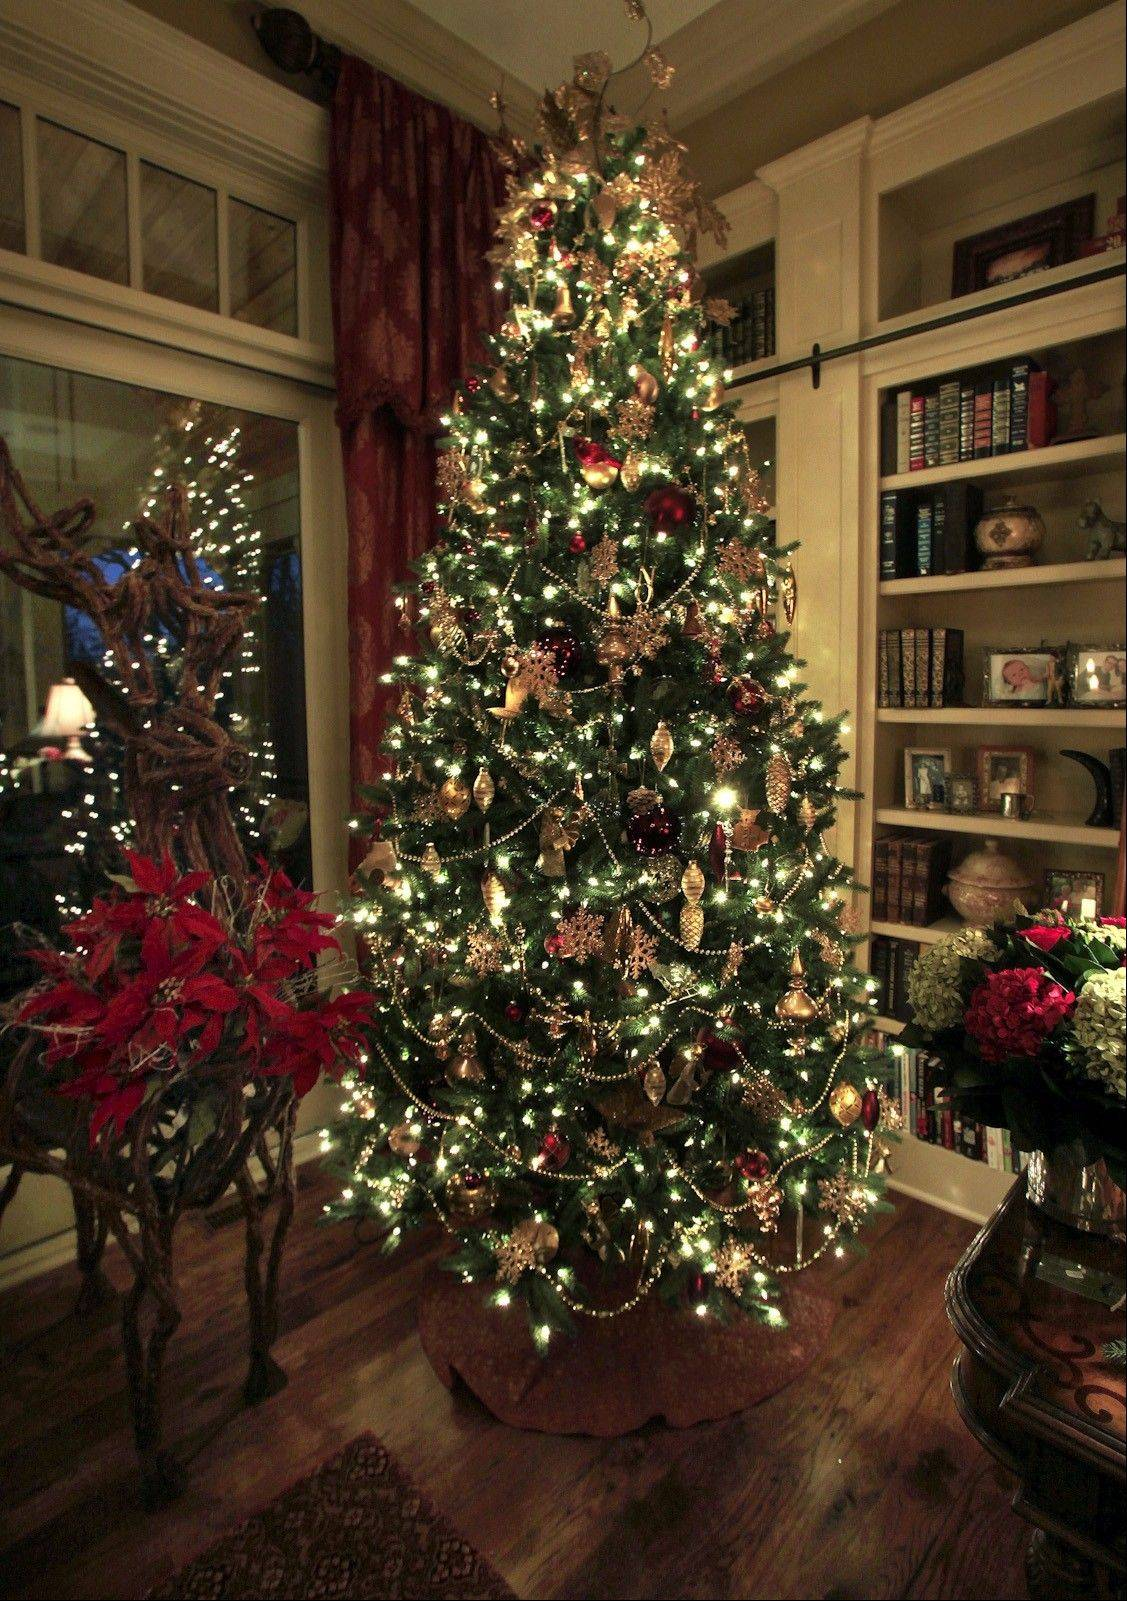 Homeowner Linda Pederson decorated her Christmas tree with burgundy and gold ornaments.